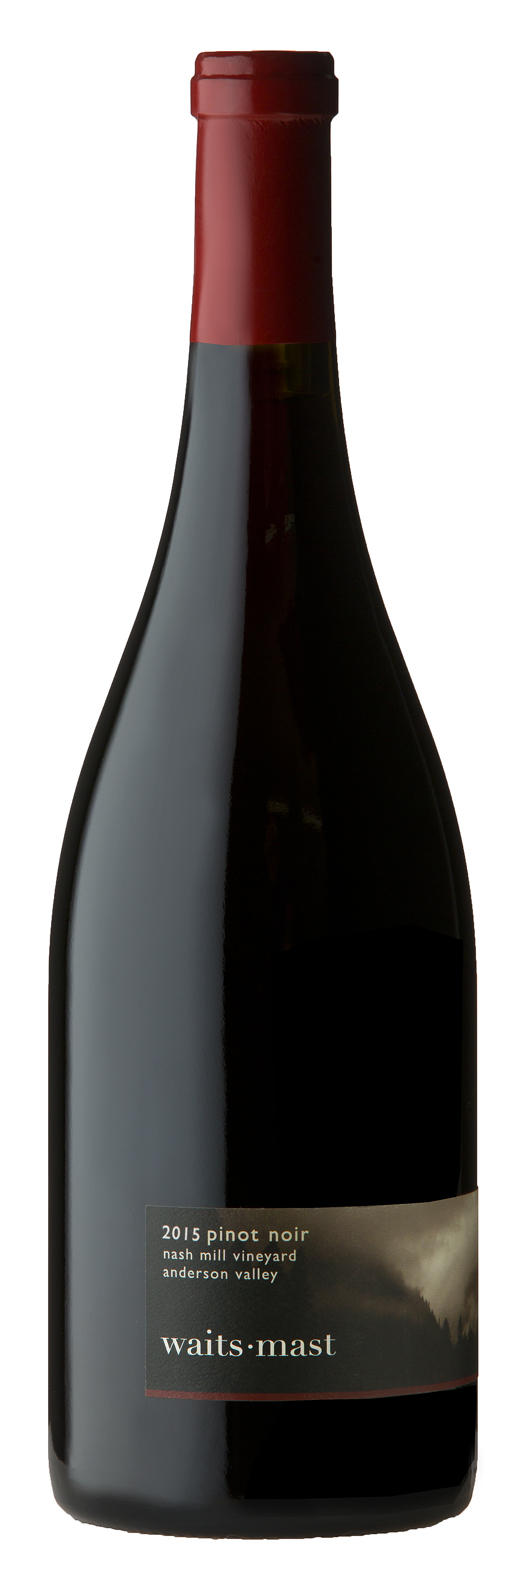 2015 Waits-Mast Pinot Noir, Nash Mill Vineyard, Anderson Valley